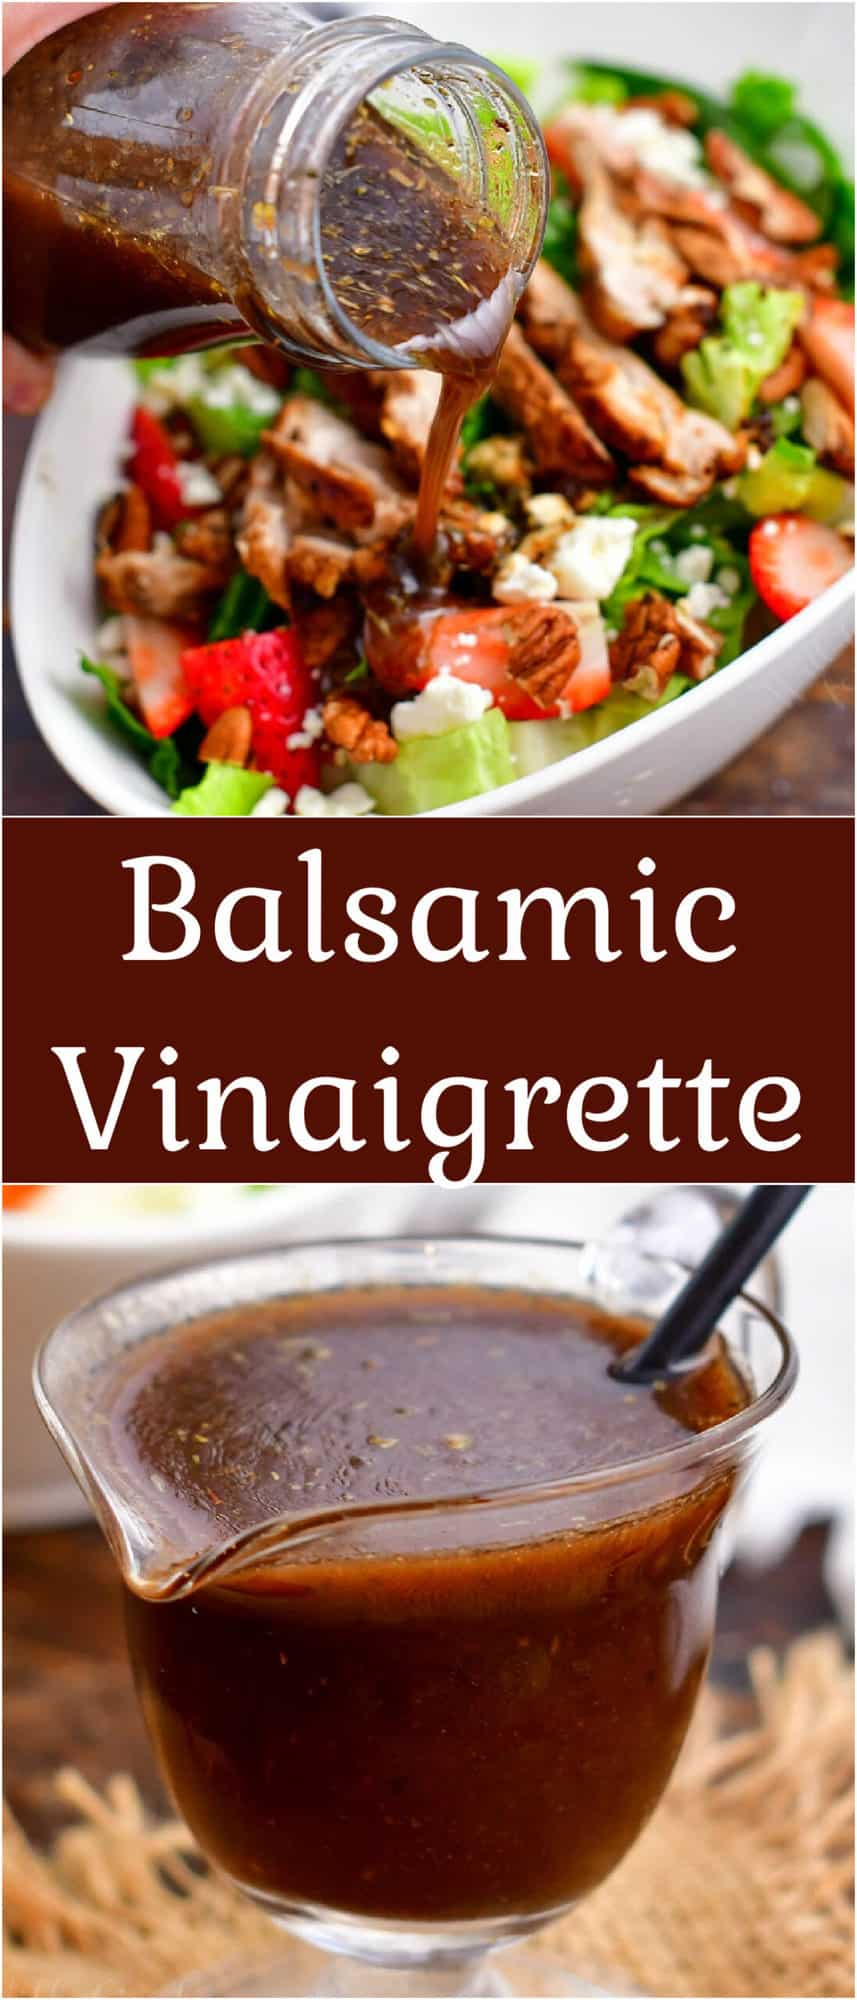 titled photo collage (and shown): Balsamic Vinaigrette